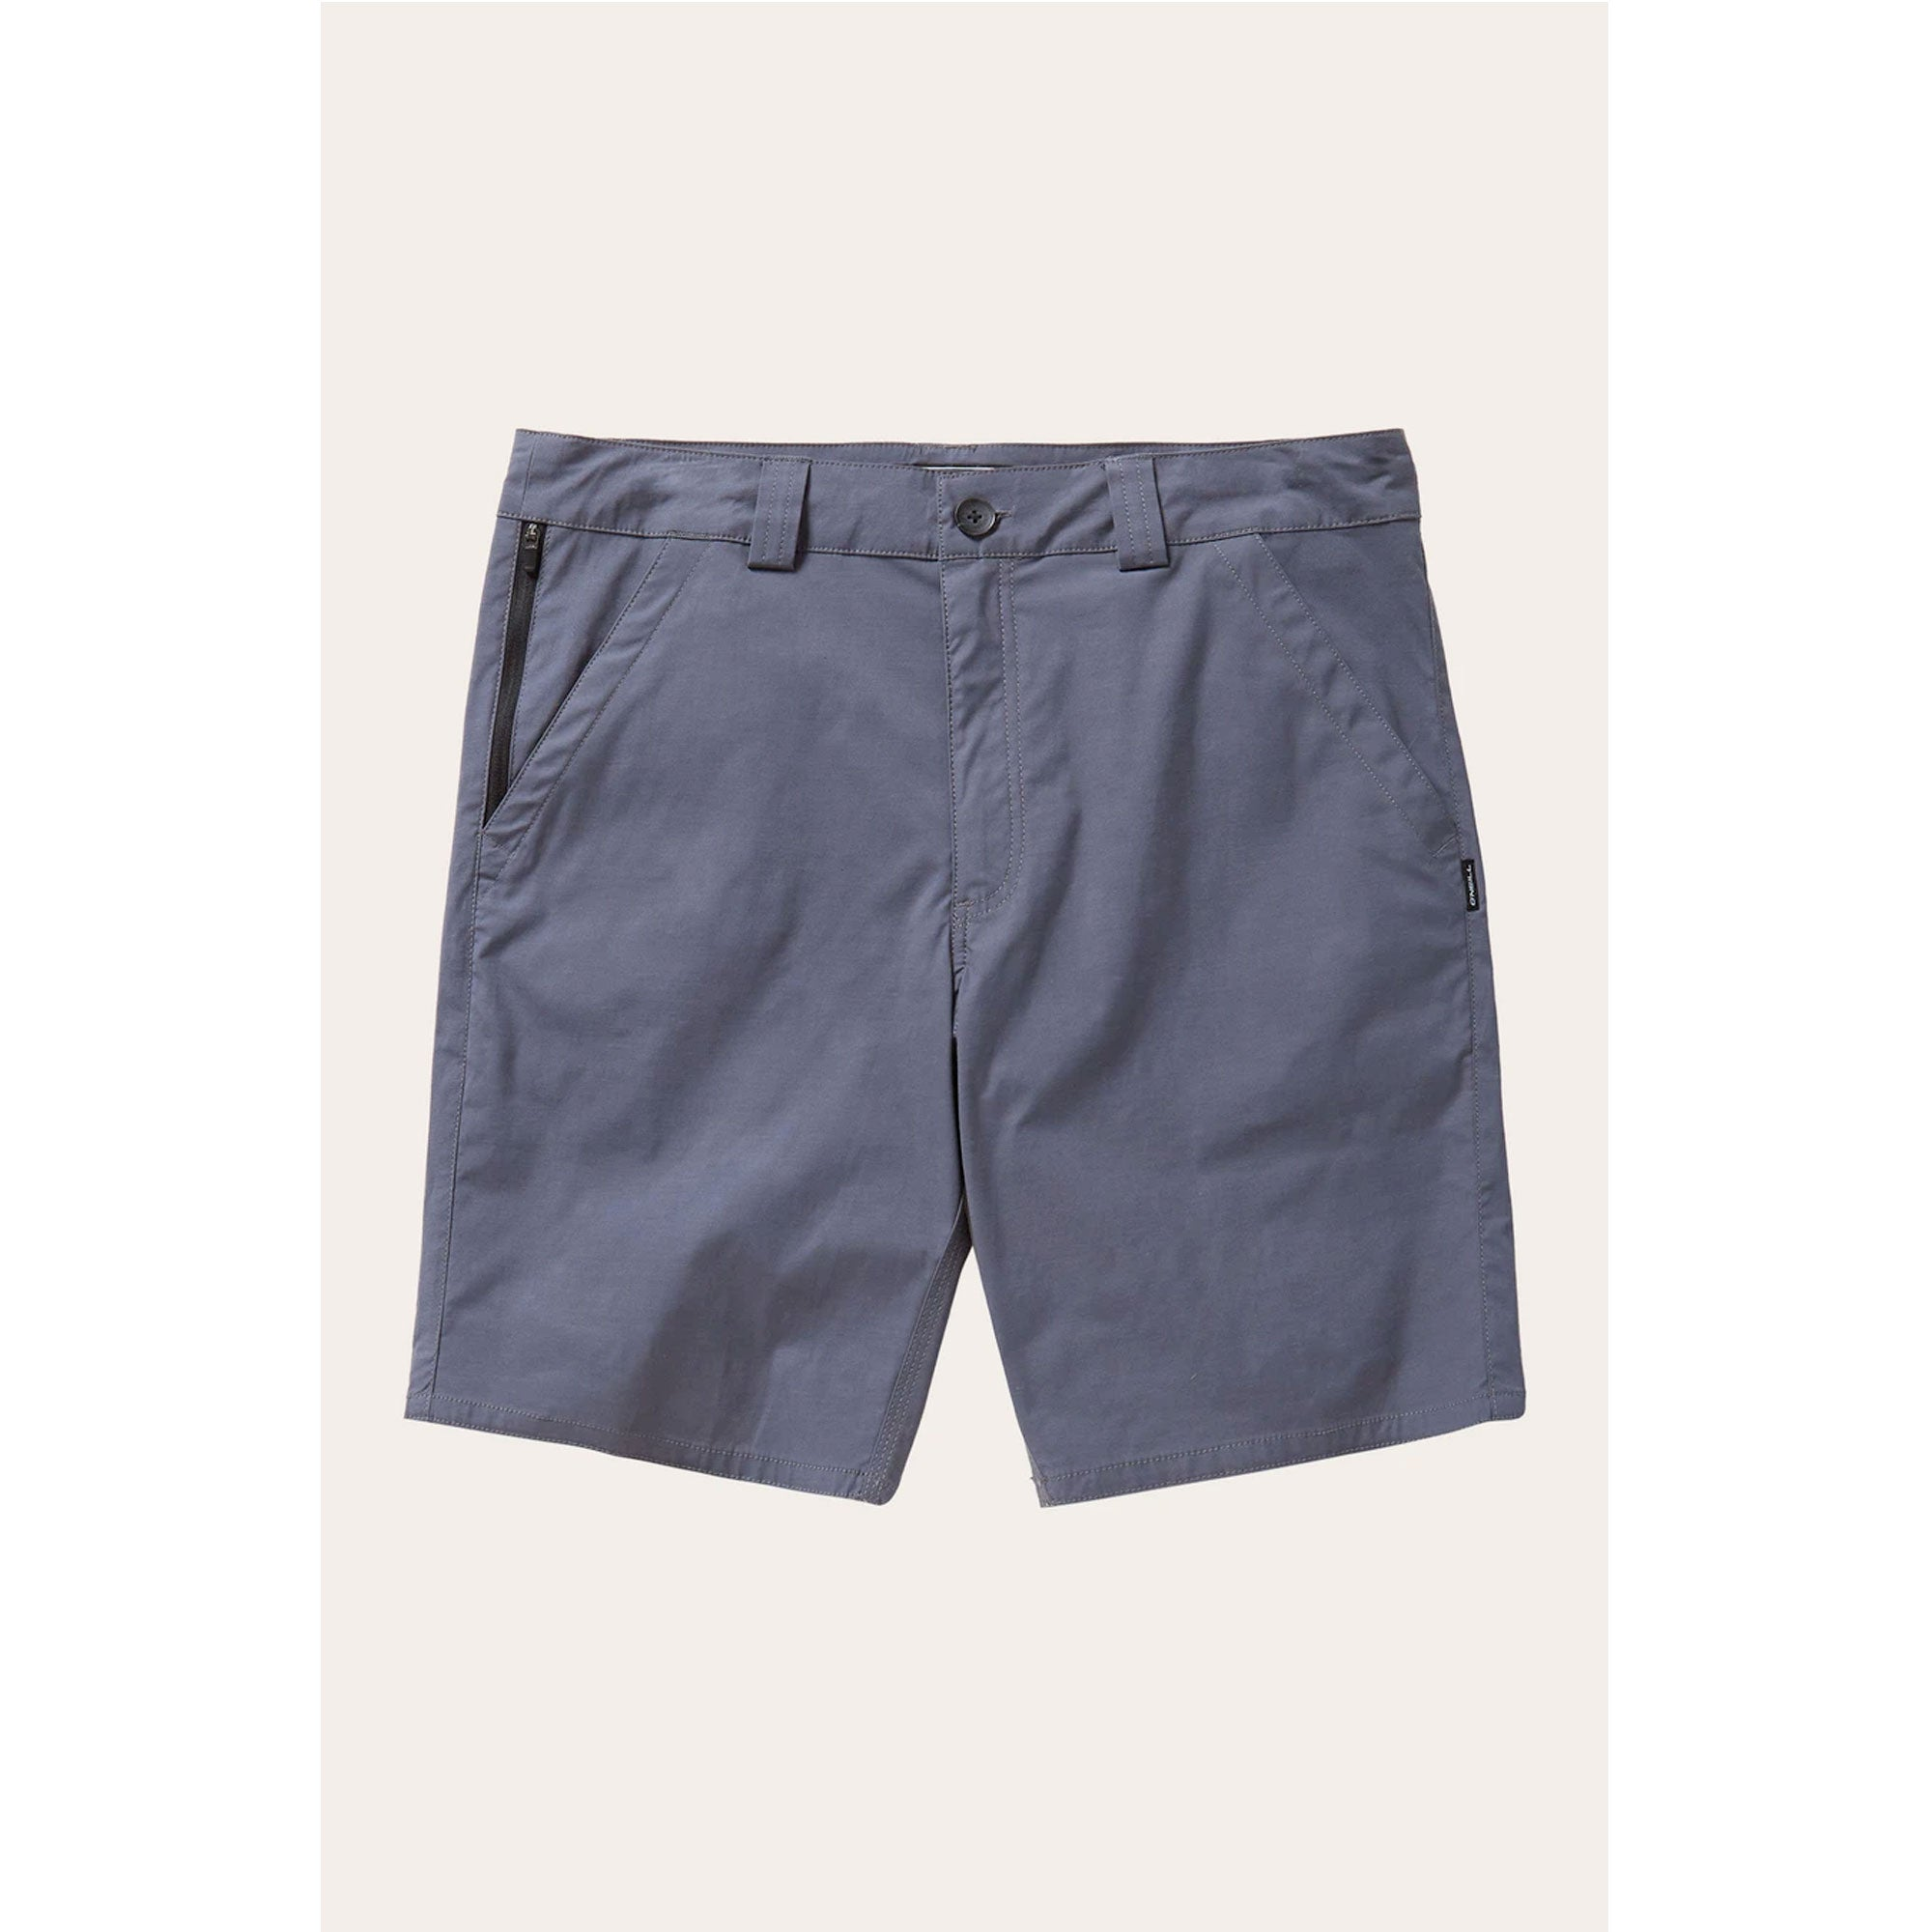 O'Neill Mission Hybrid Men's Walkshorts